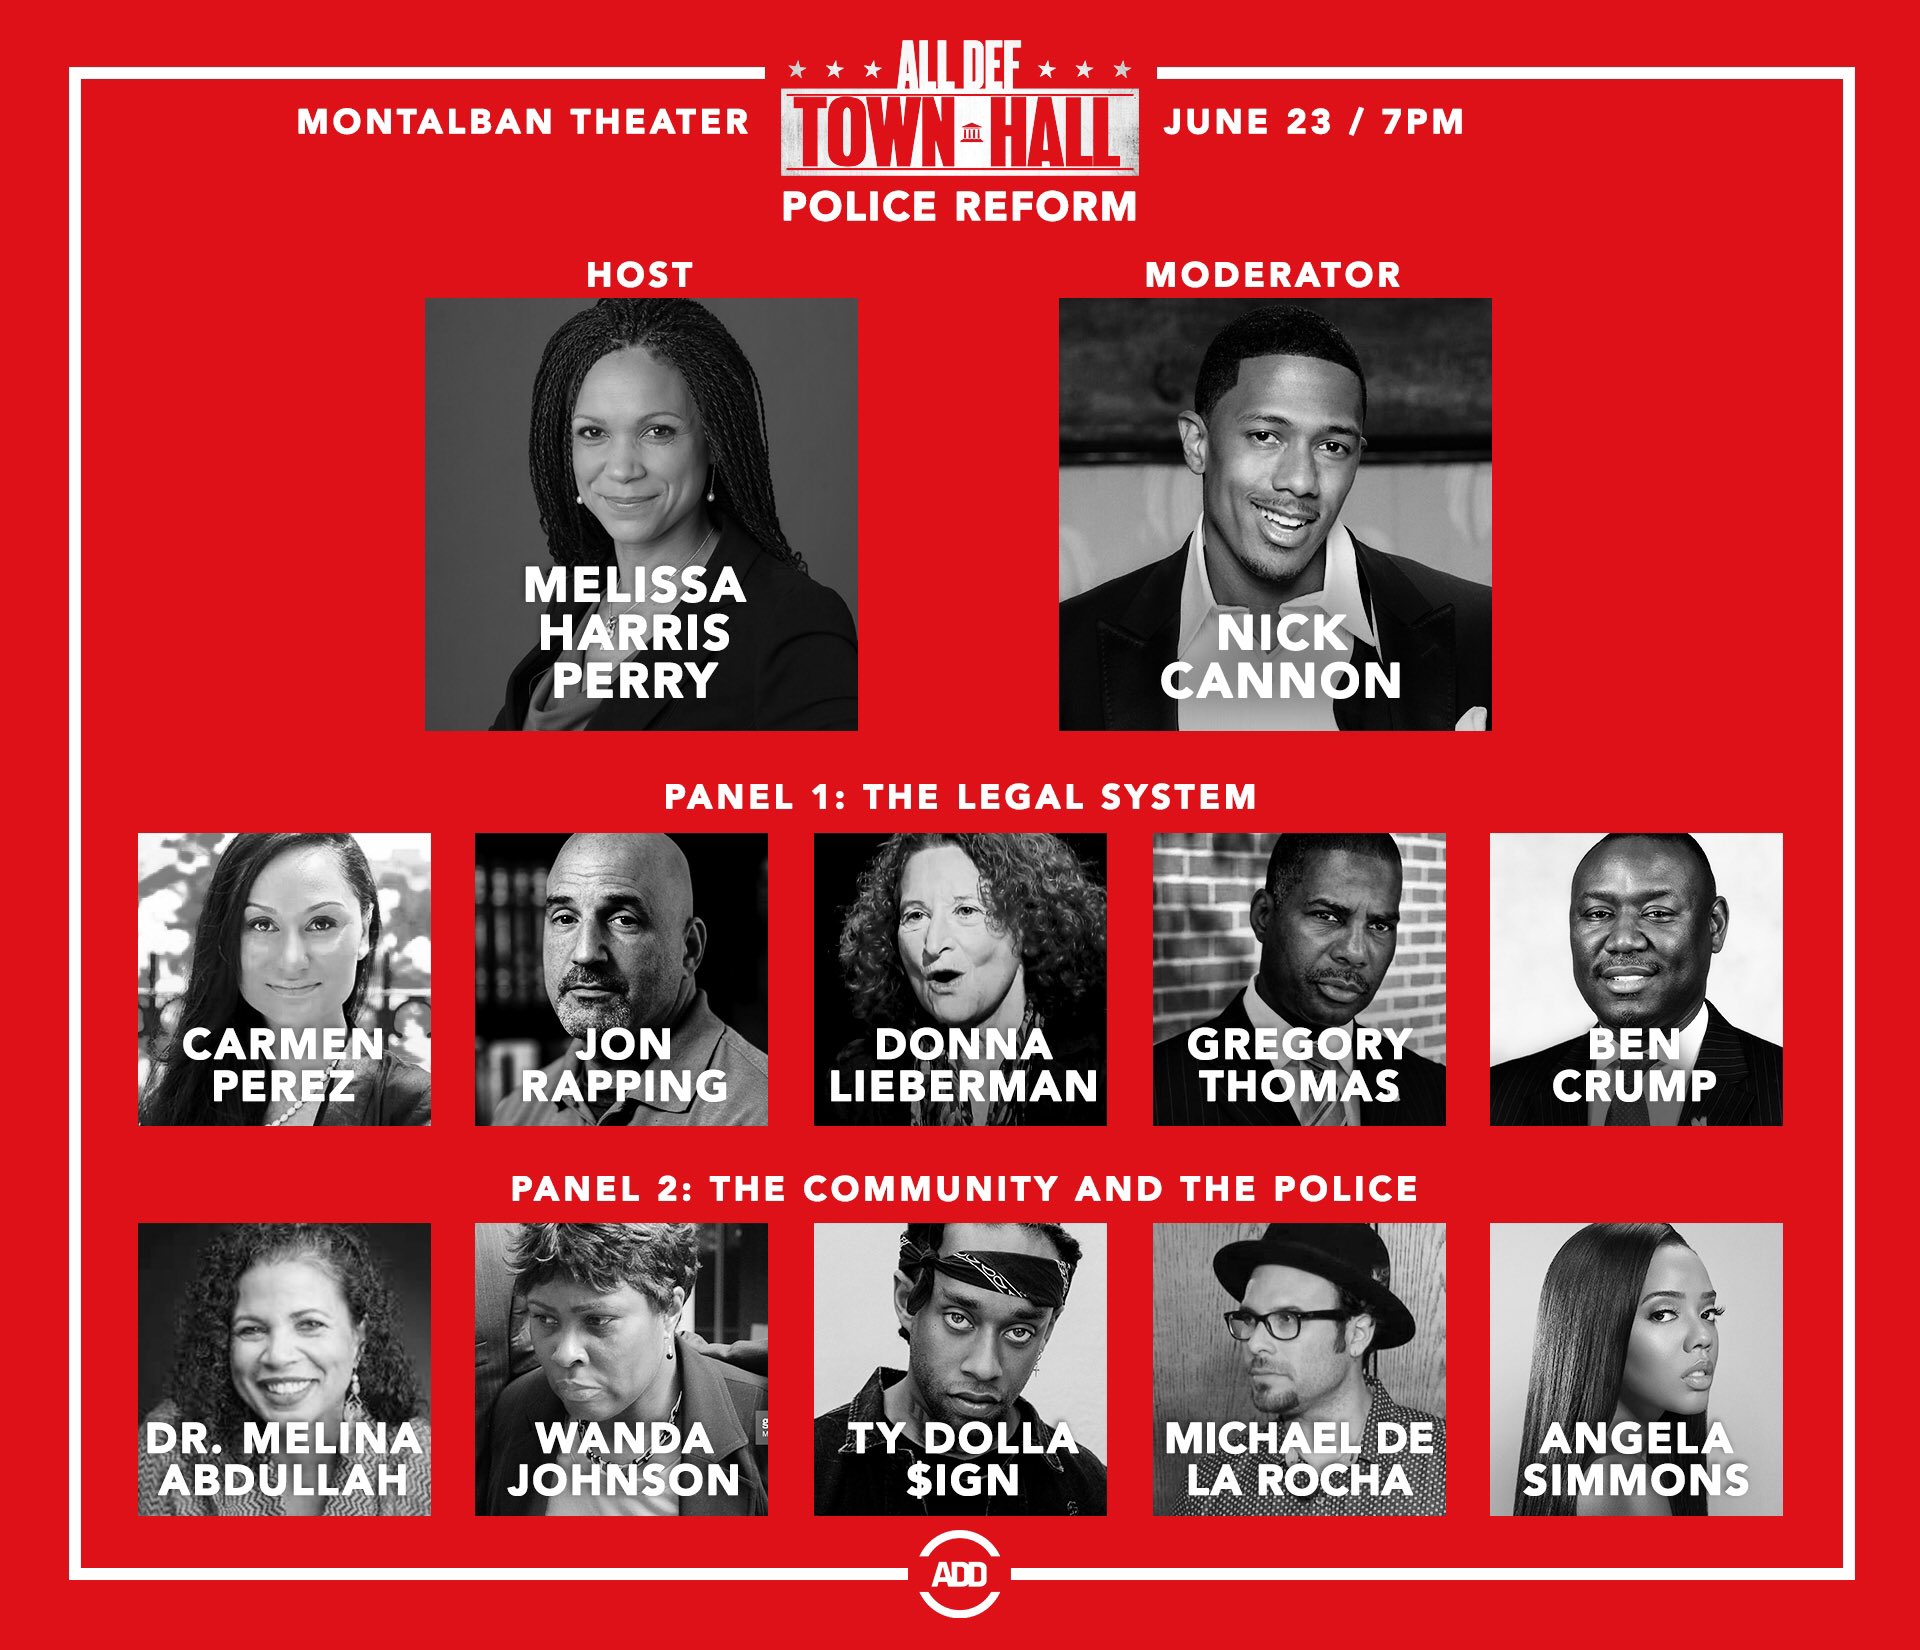 RT @UncleRUSH: LA join me at the #AllDefTownHall tomorrow for a chat on police reform.  RSVP: https://t.co/pNB82IHq6G https://t.co/VHoMCKJr…